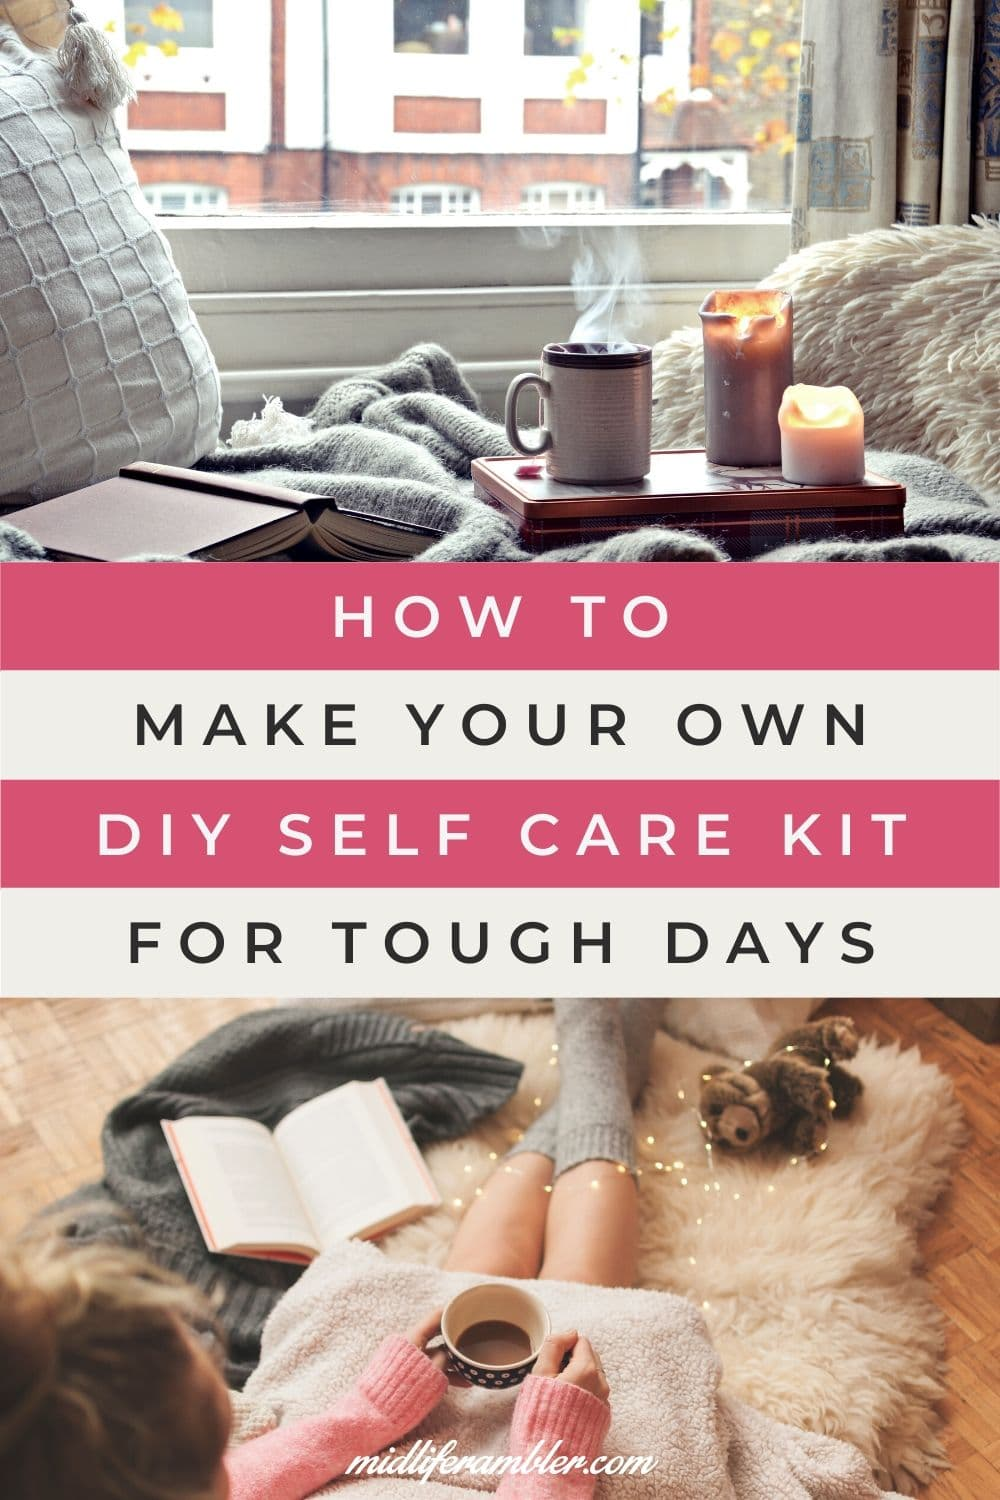 How to Make a Soothing Self-Care Kit for Stressful Times 8